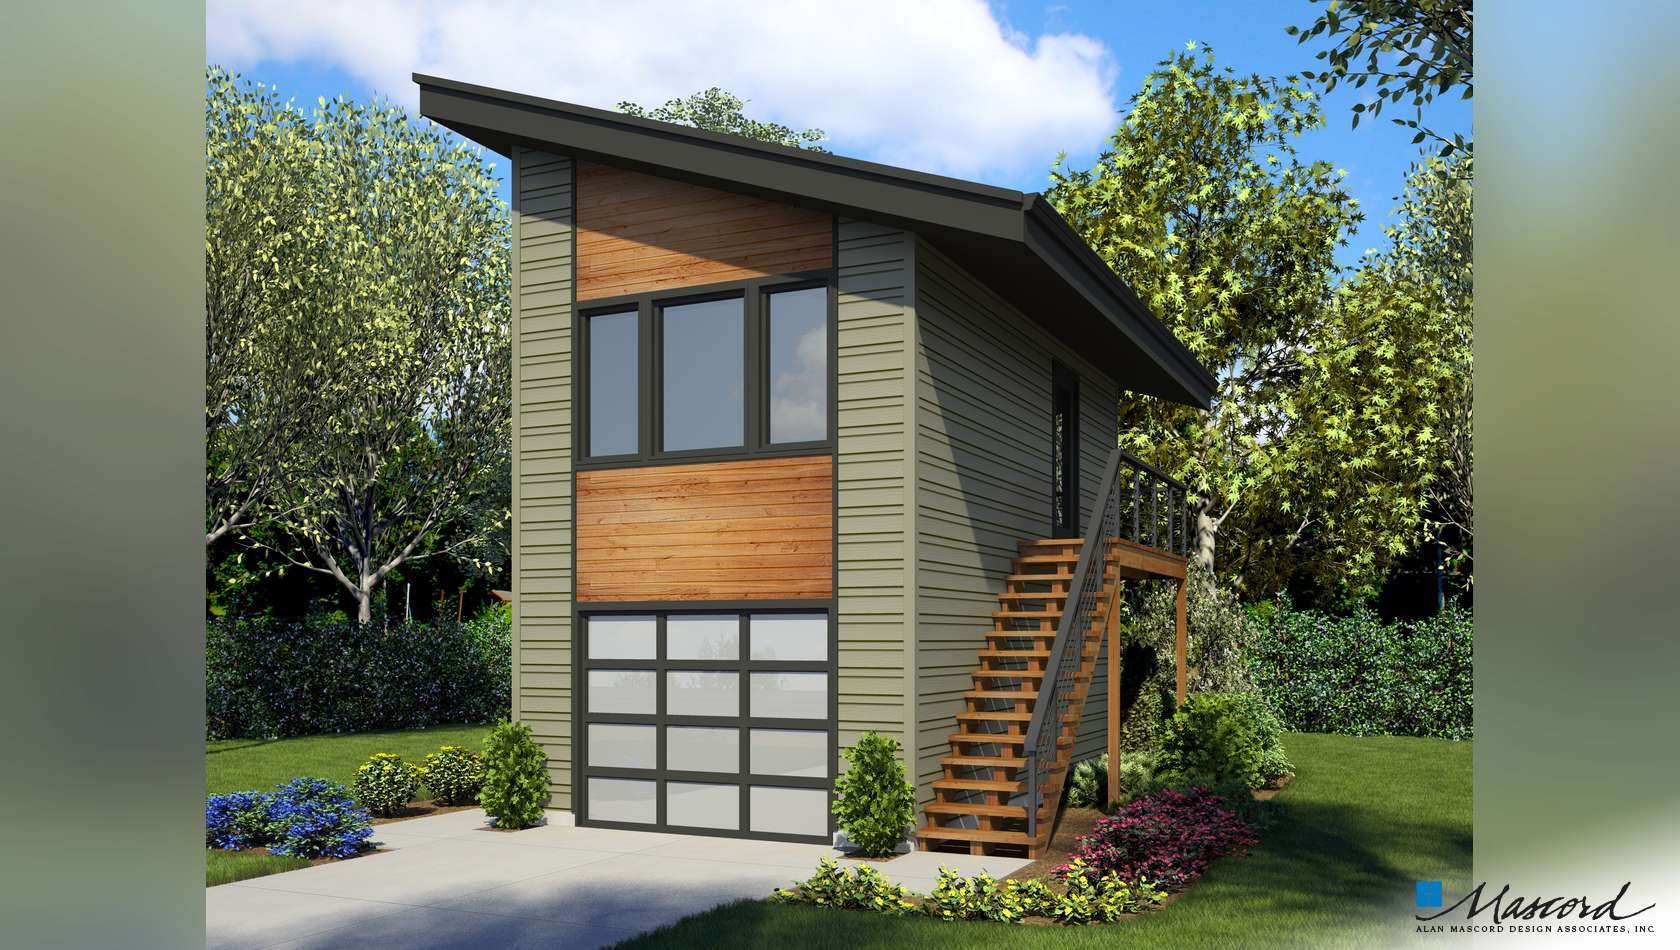 Main image for house plan 5038: The Stratton